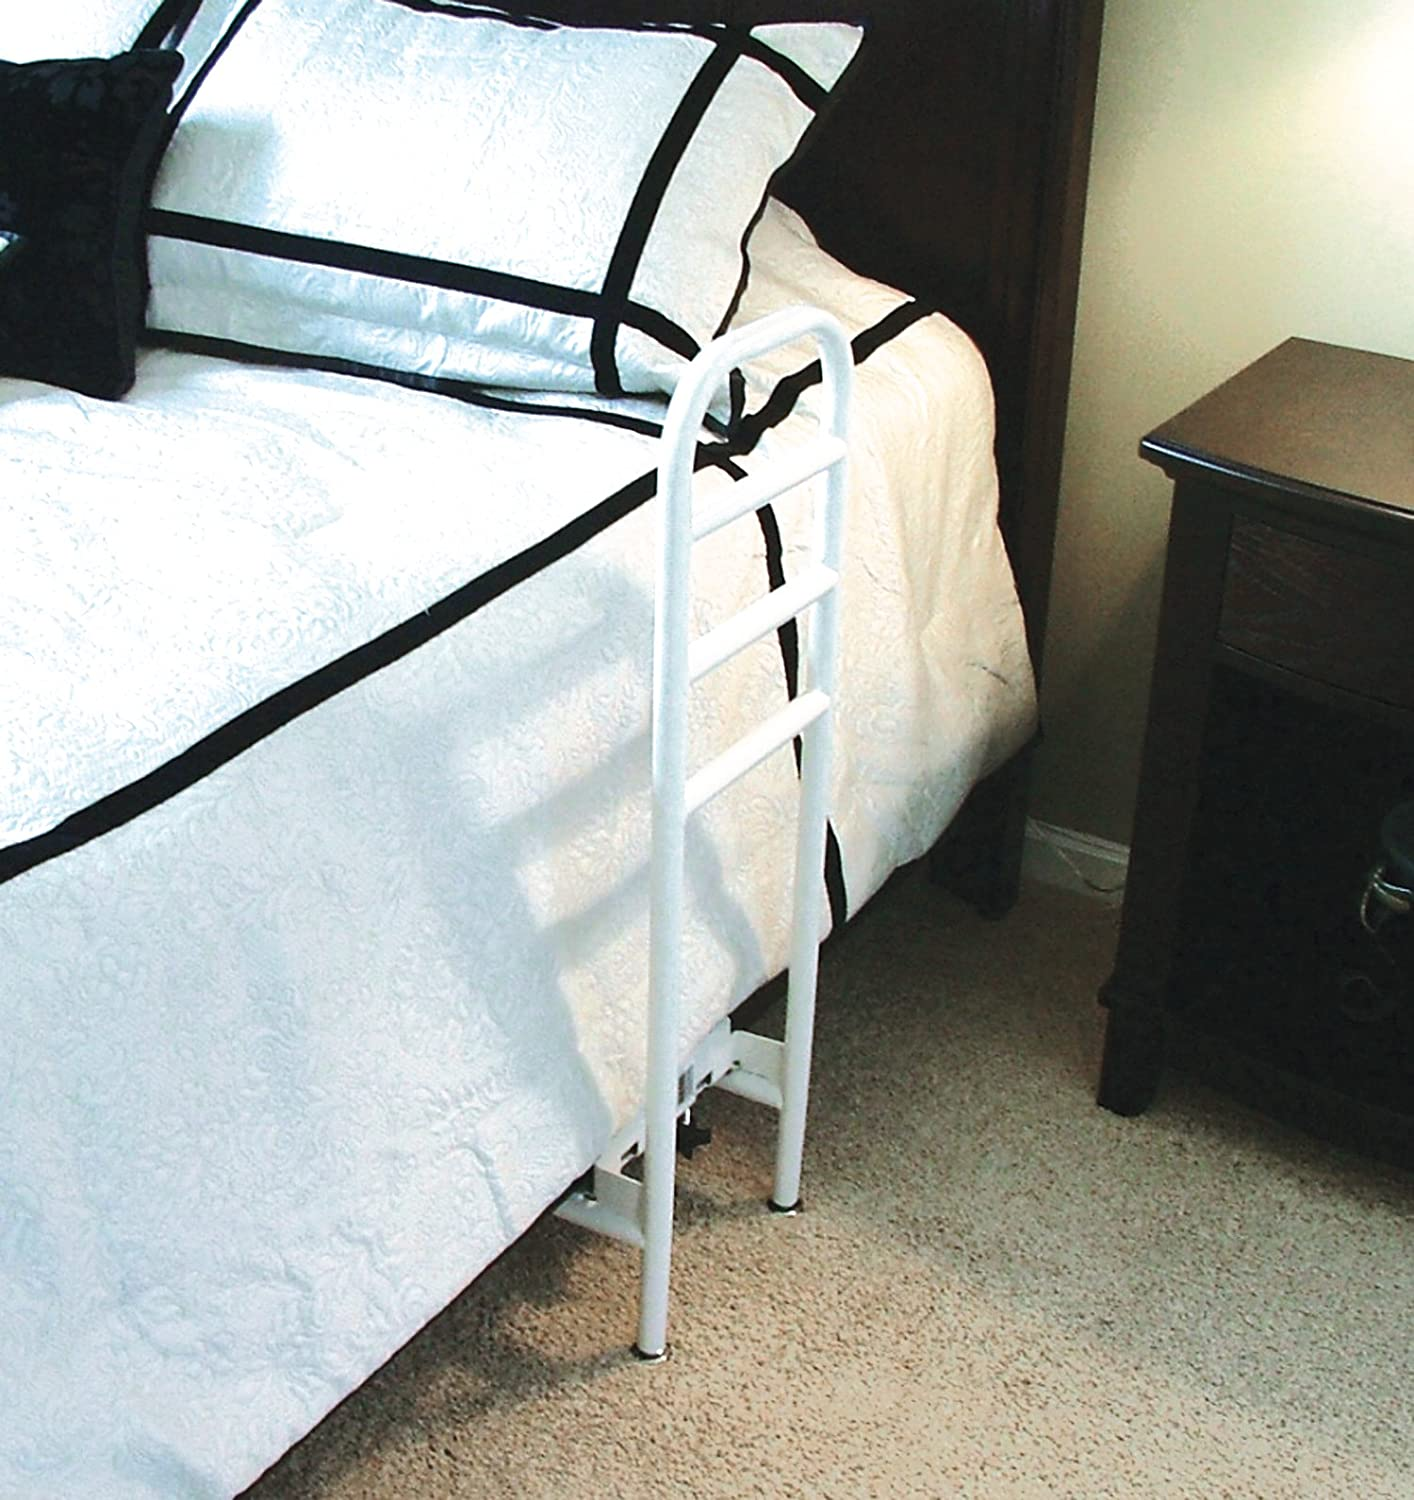 Amazon.com: Drive Medical Home Bed Side Helper: Health & Personal Care